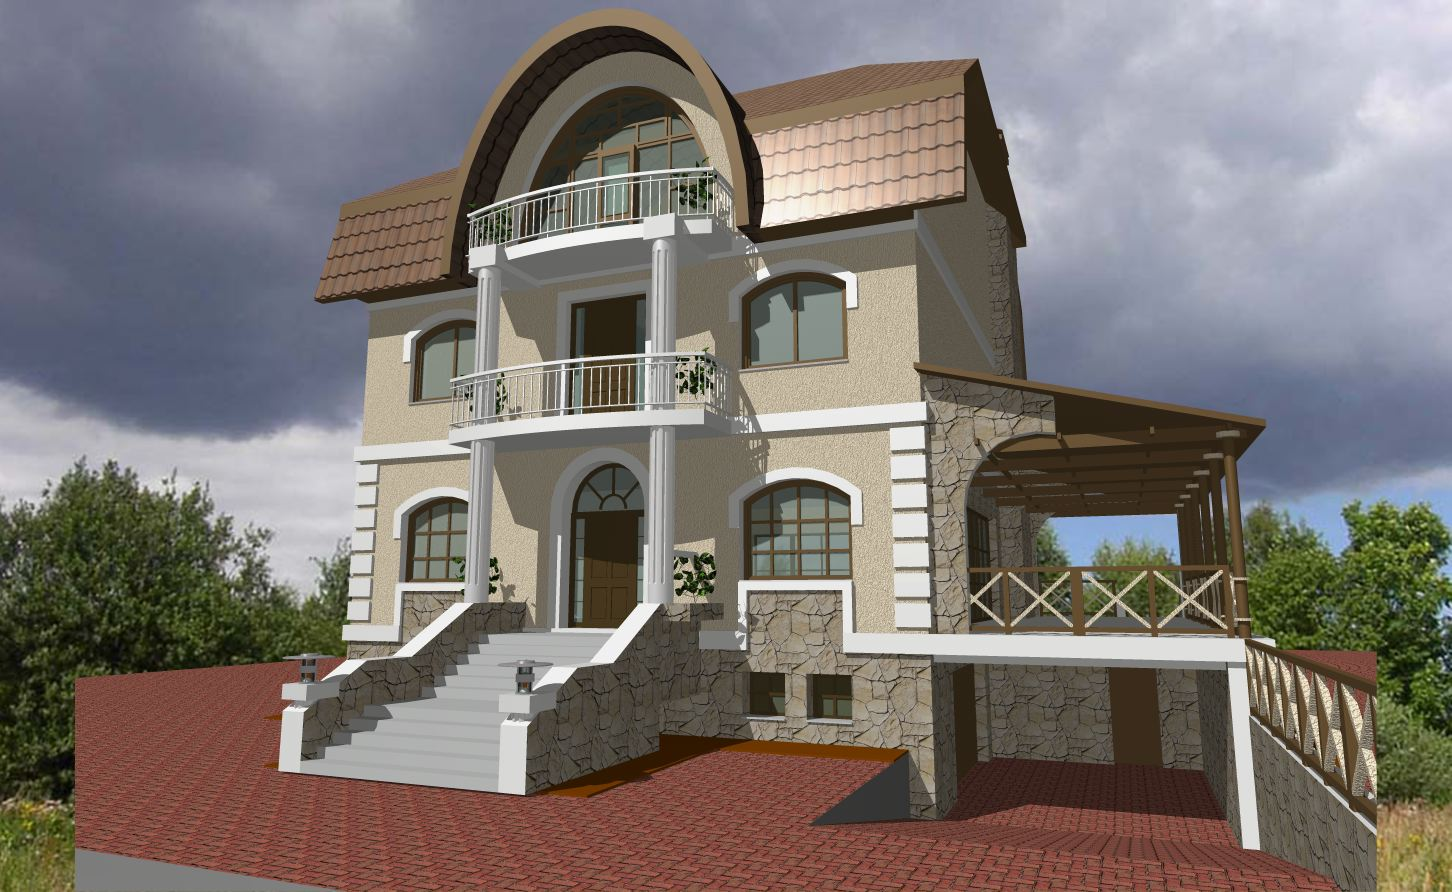 Foundation dezin decor exterior elevations view 39 s for Exterior design of small houses